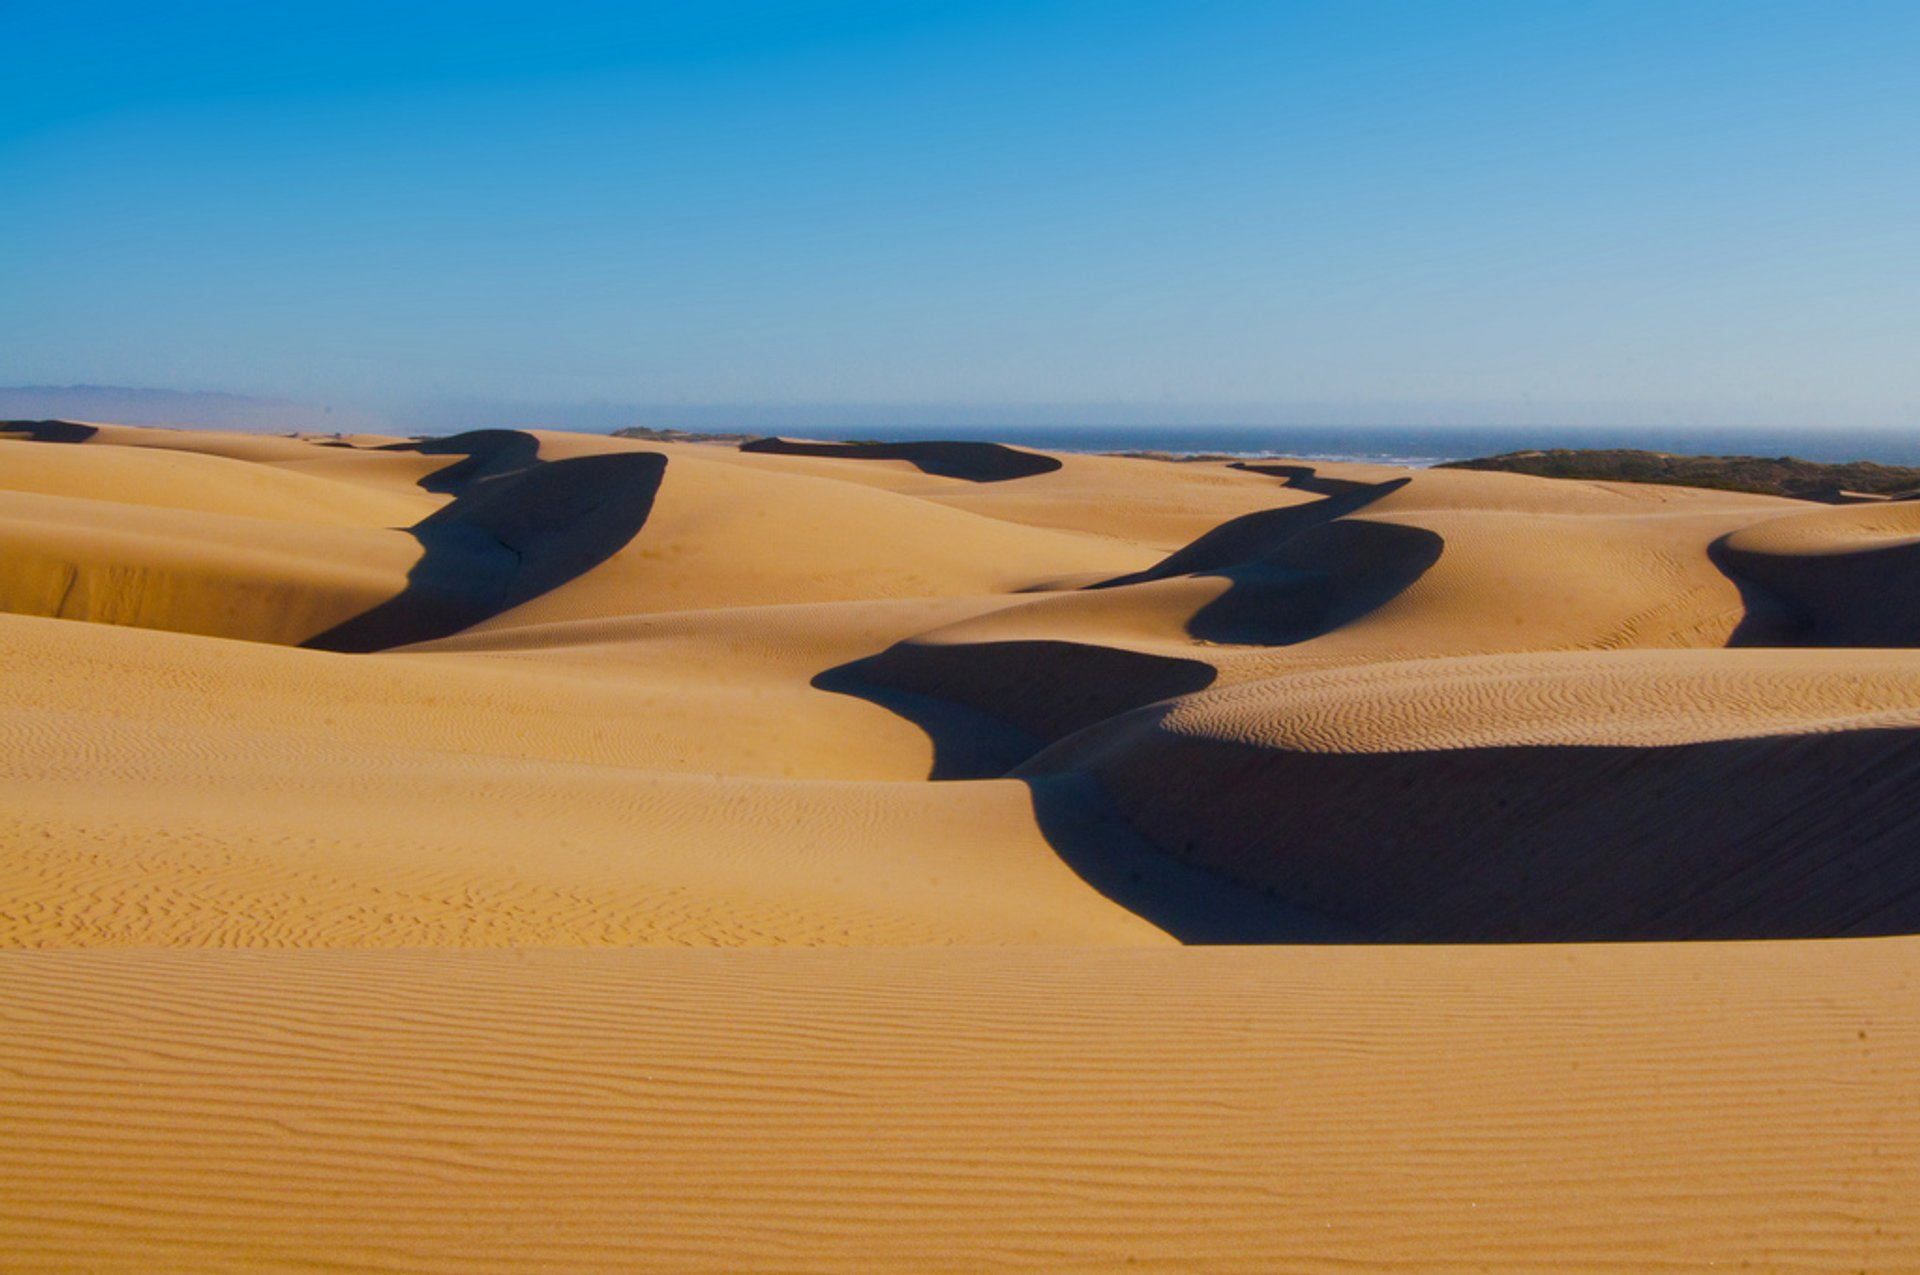 Guadalupe-Nipomo Dunes in California - Best Season 2020